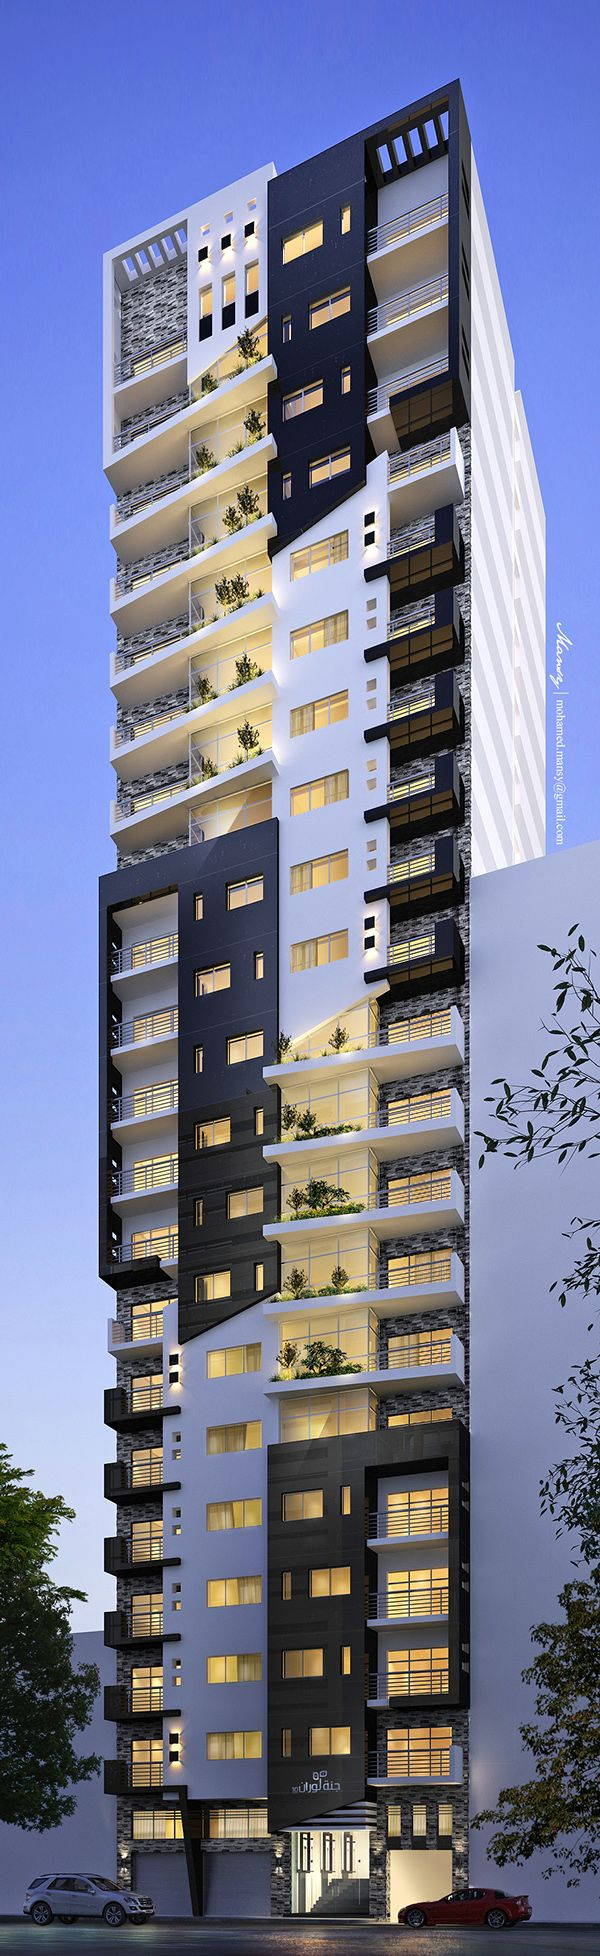 Contemporary Apartment Buildings construir es el arte de crear infraestructura